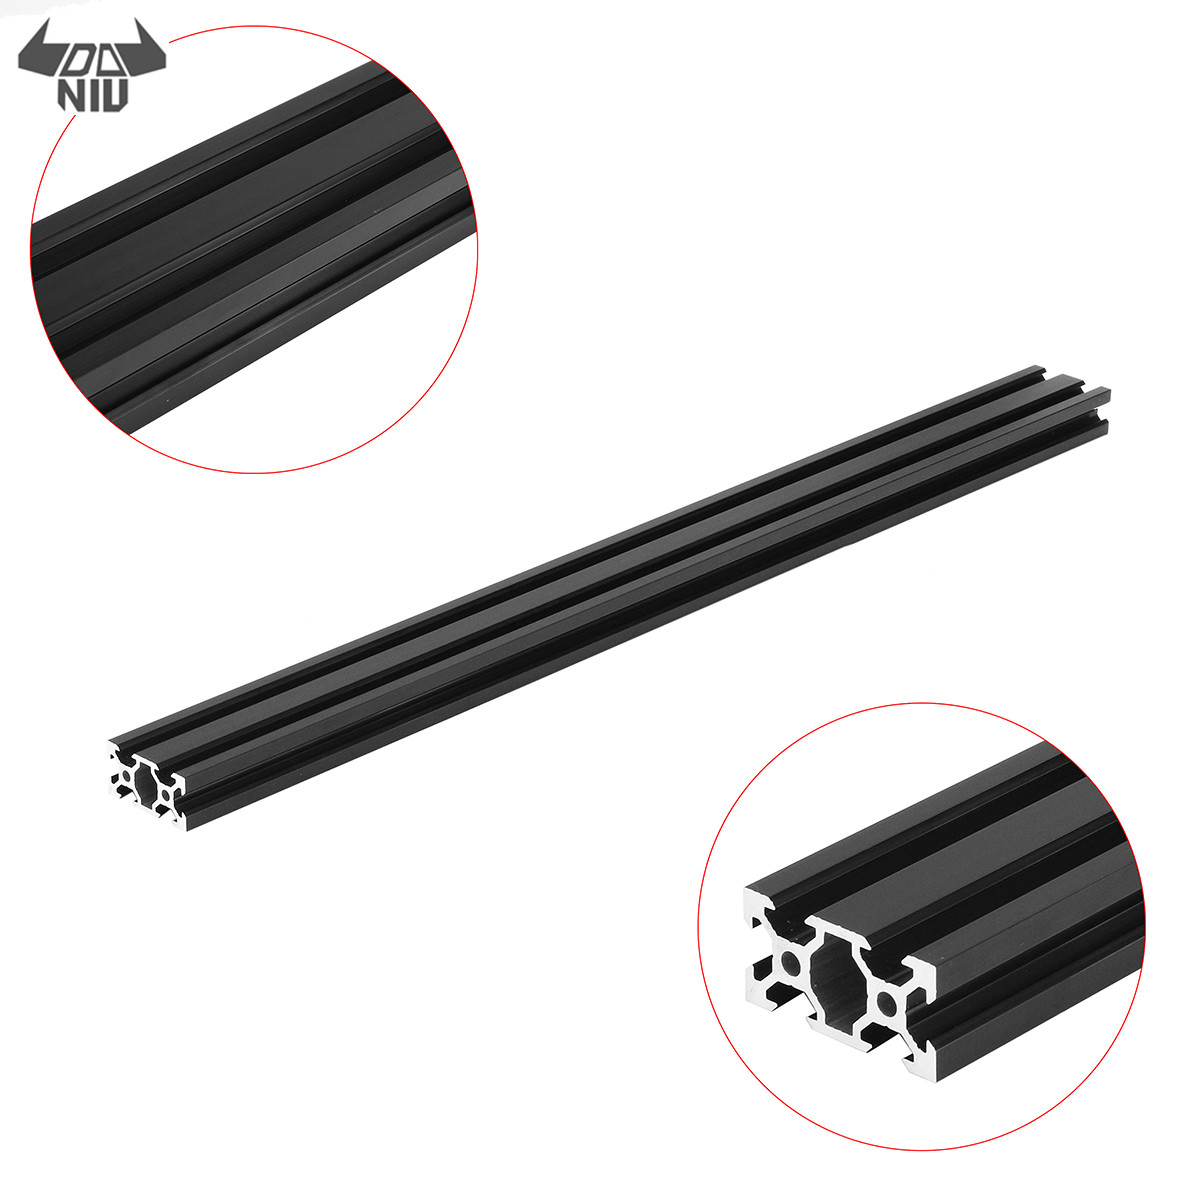 DANIU Durable 500mm <font><b>2040</b></font> <font><b>V</b></font>-<font><b>Slot</b></font> Aluminum Profile Extrusion Frame DIY CNC Tool Black image